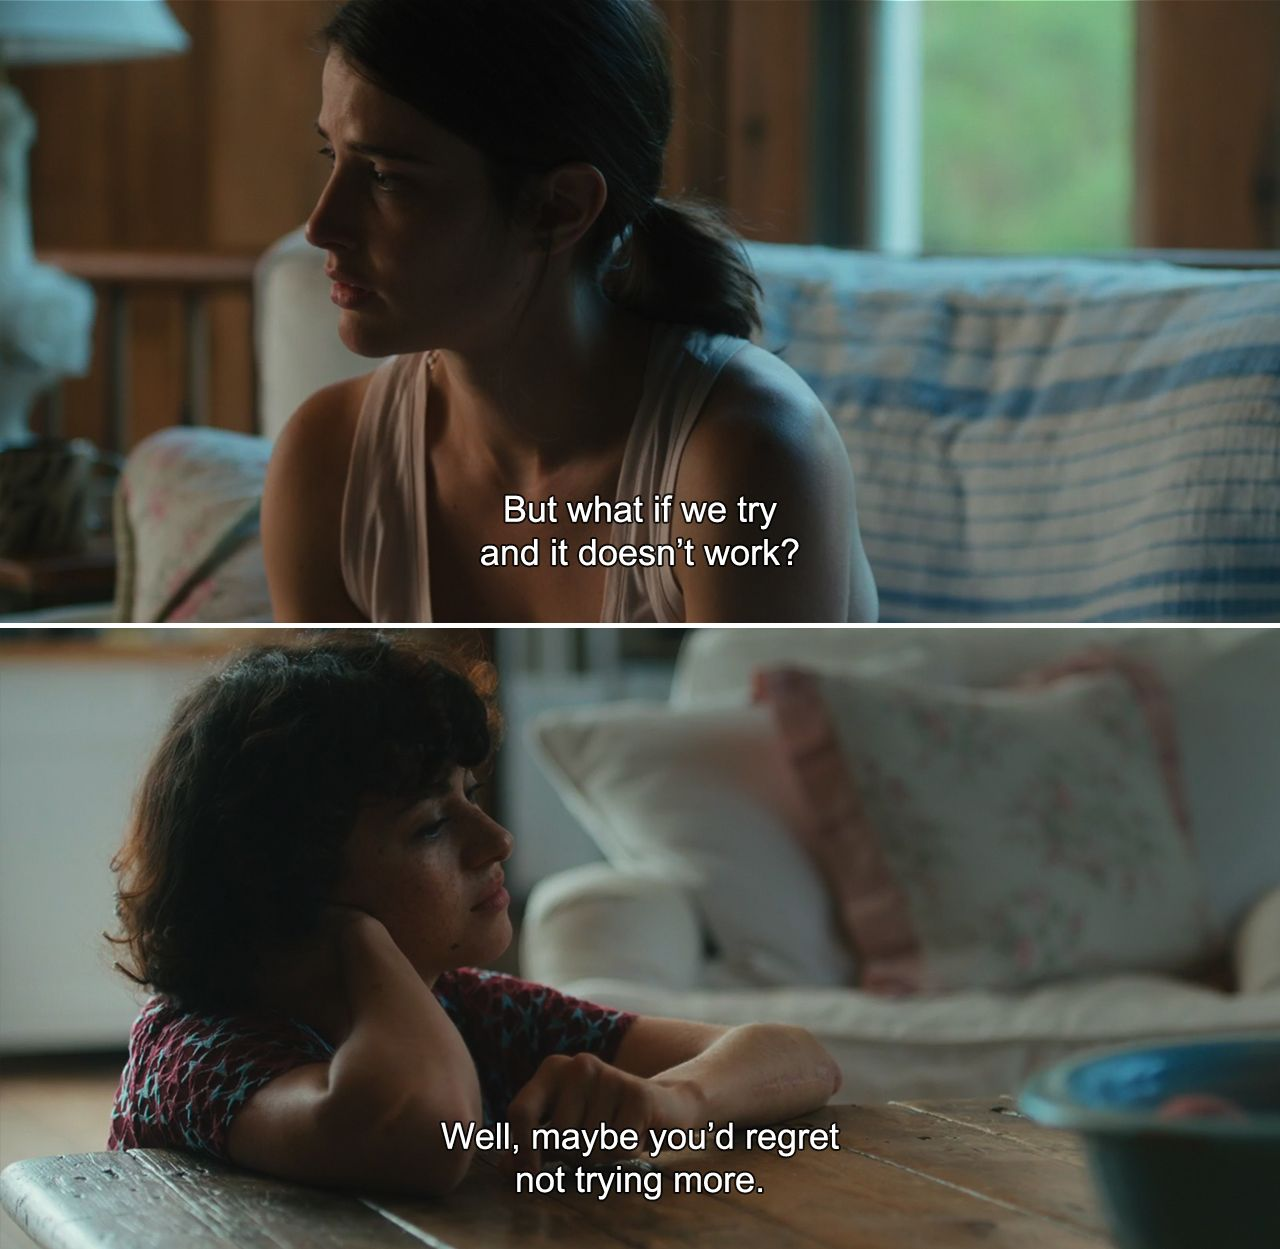 The Intervention 2016 Ruby But What If We Try And It Doesn T Work Lola Well Maybe You D Regret Not Trying More Movie Quotes Film Quotes Movie Lines